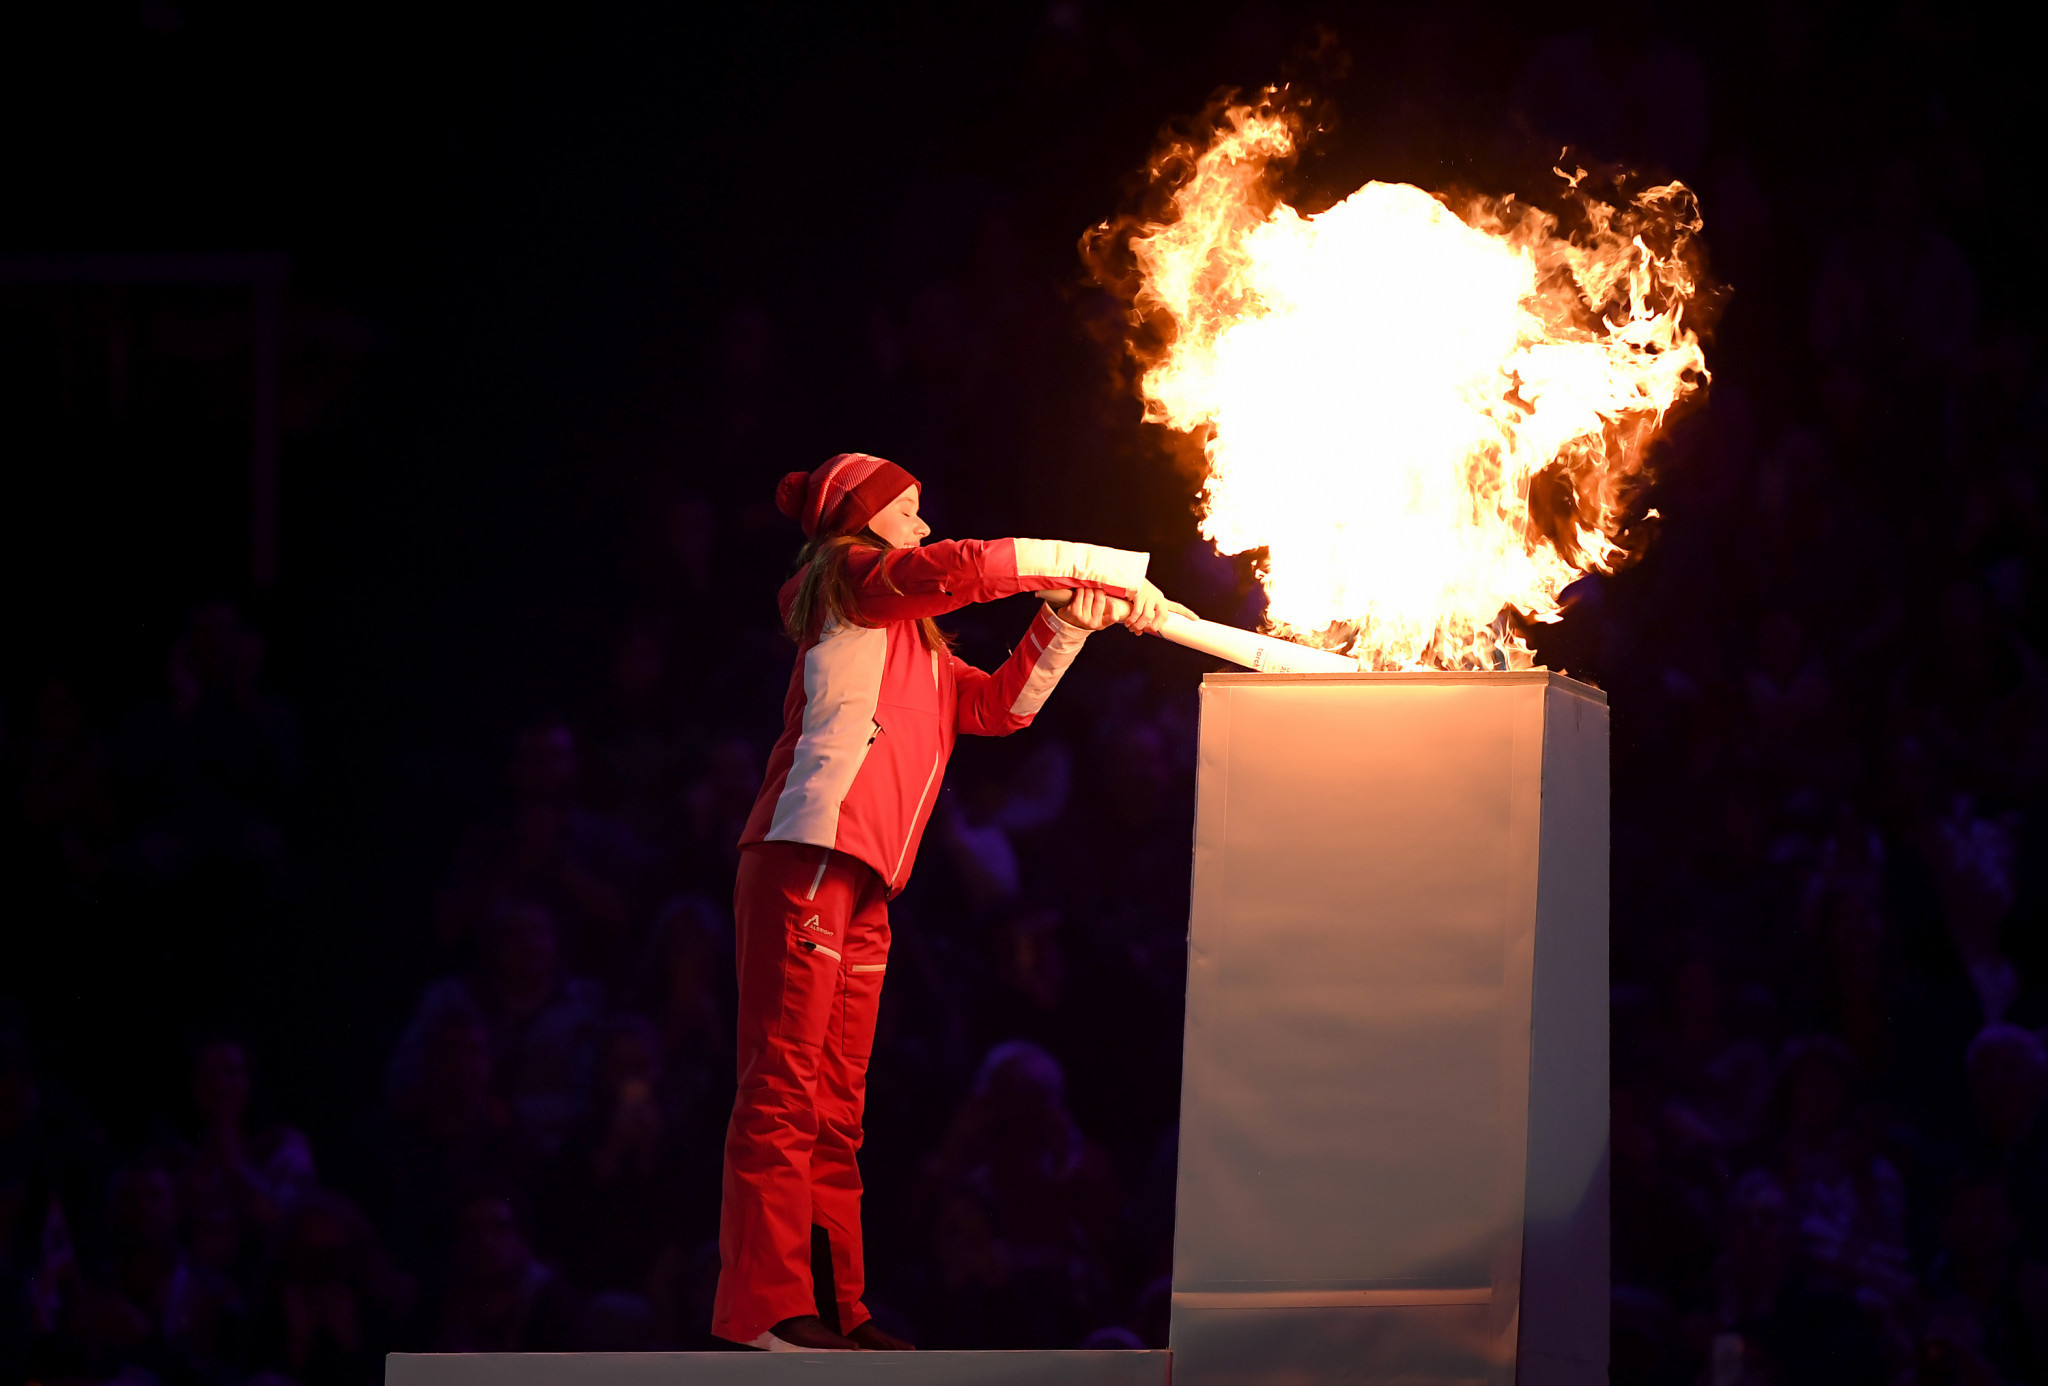 The flame was lit by Gina Zehnder, the youngest member of the Swiss team ©Getty Images